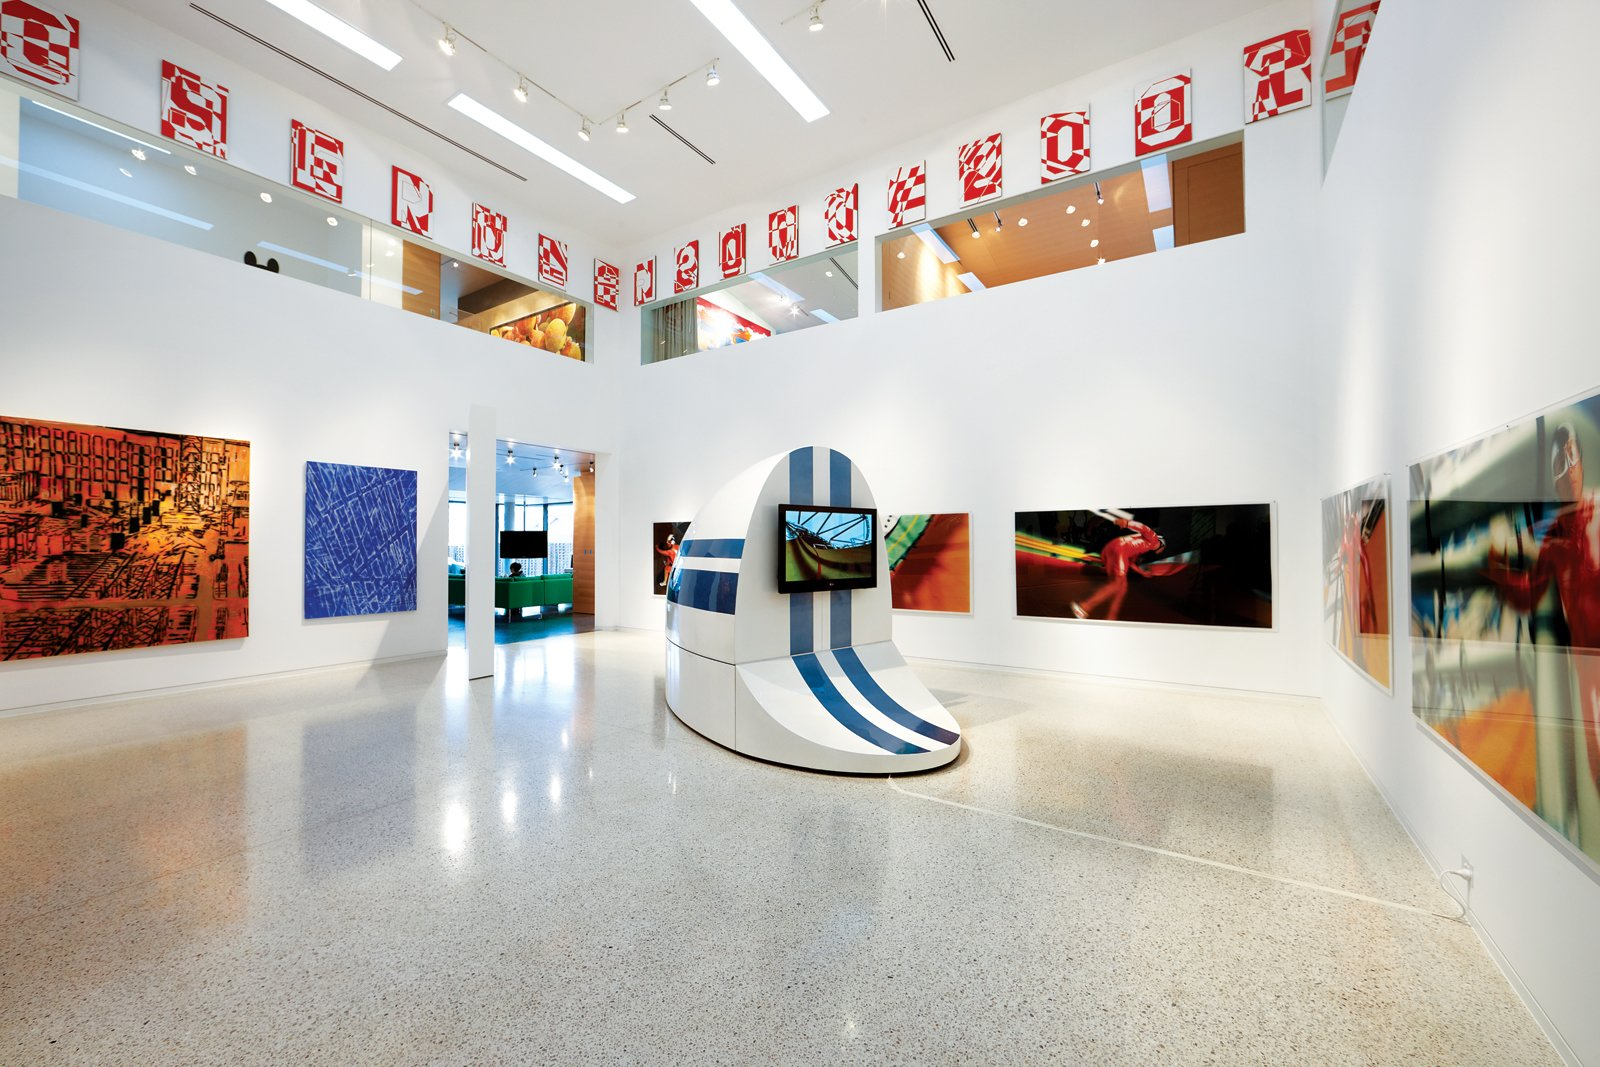 """The """"white cube"""" gallery space off the dining area displays work by contemporary Australian artists including Louise Forthun and Patricia Piccinini. Clerestory windows   offer glimpses into   the second-floor library and private bedrooms."""